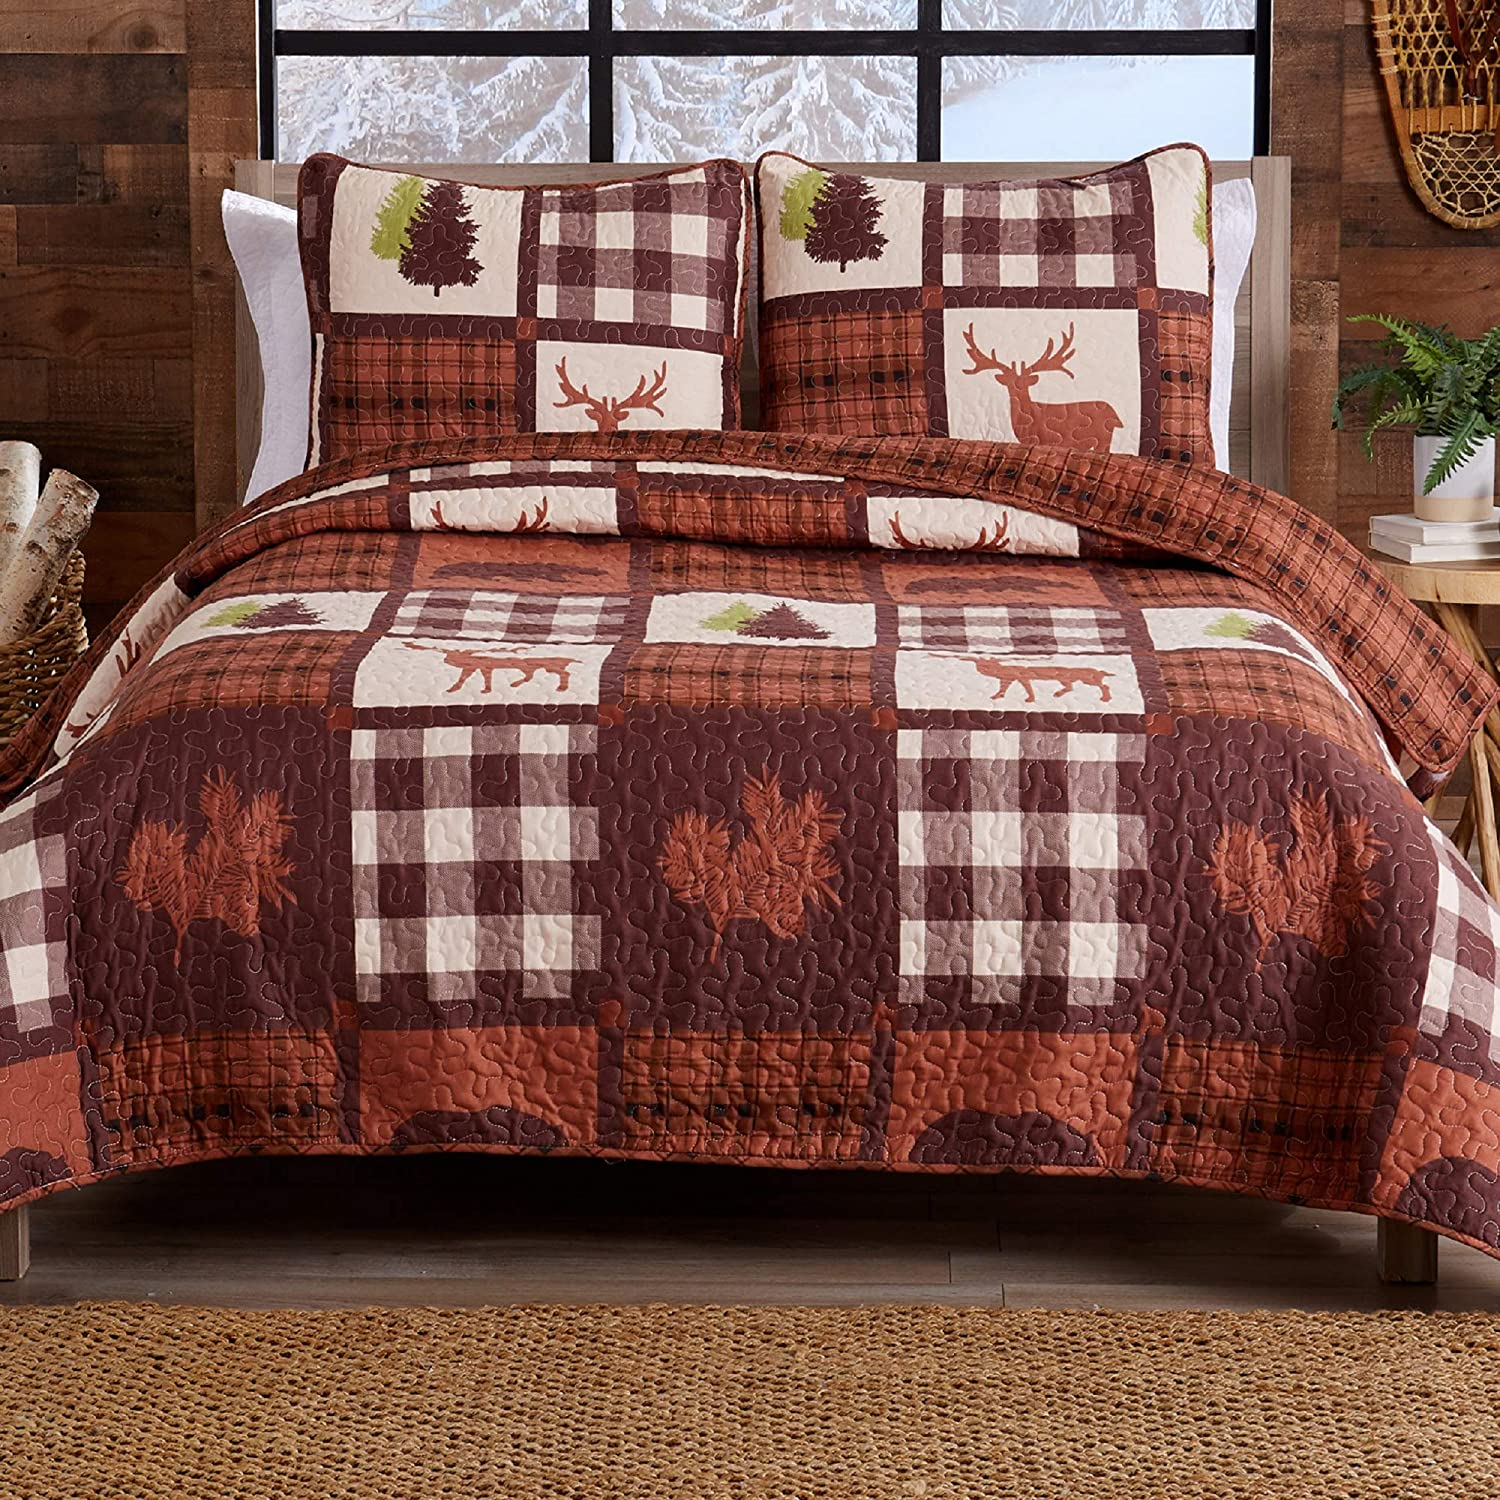 Lodge Bedspread King Size Quilt with 2 Shams. Cabin 3-Piece Reversible All Season Quilt Set. Rustic Quilt Coverlet Bed Set. Stonehurst Collection. (Chocolate/Green)